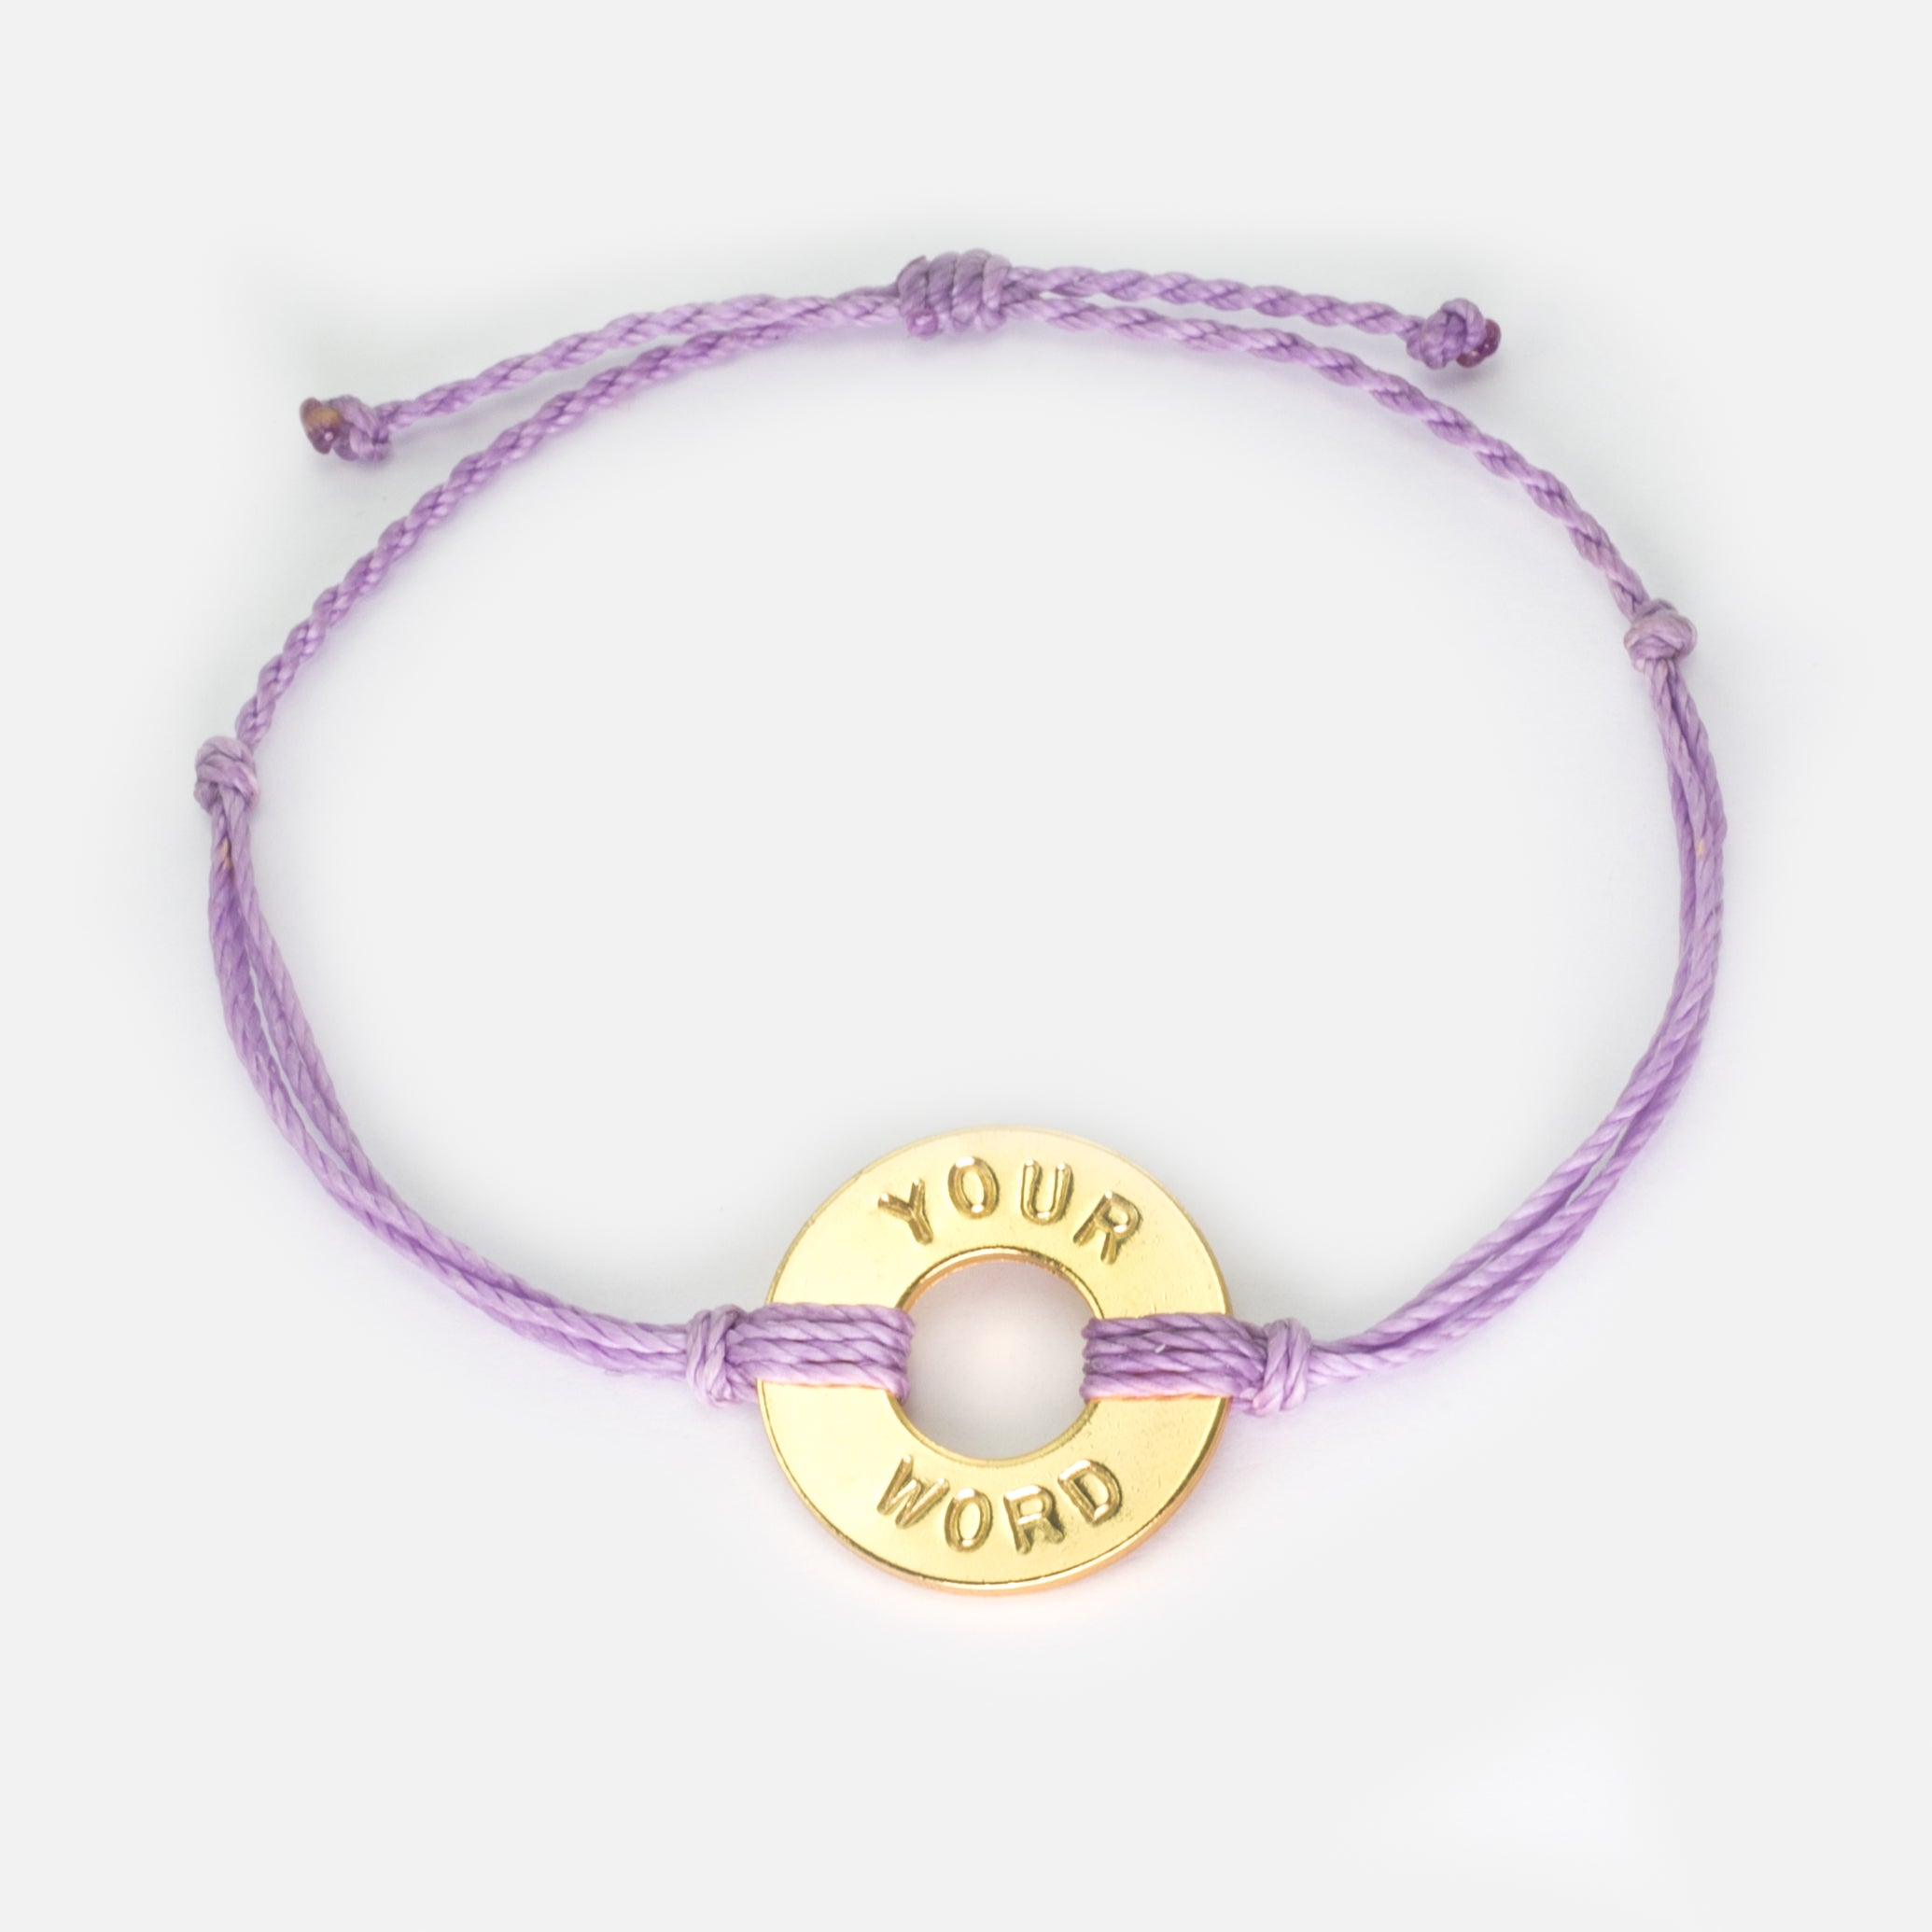 MyIntent Custom Twist Bracelet Lavender String with Gold Token